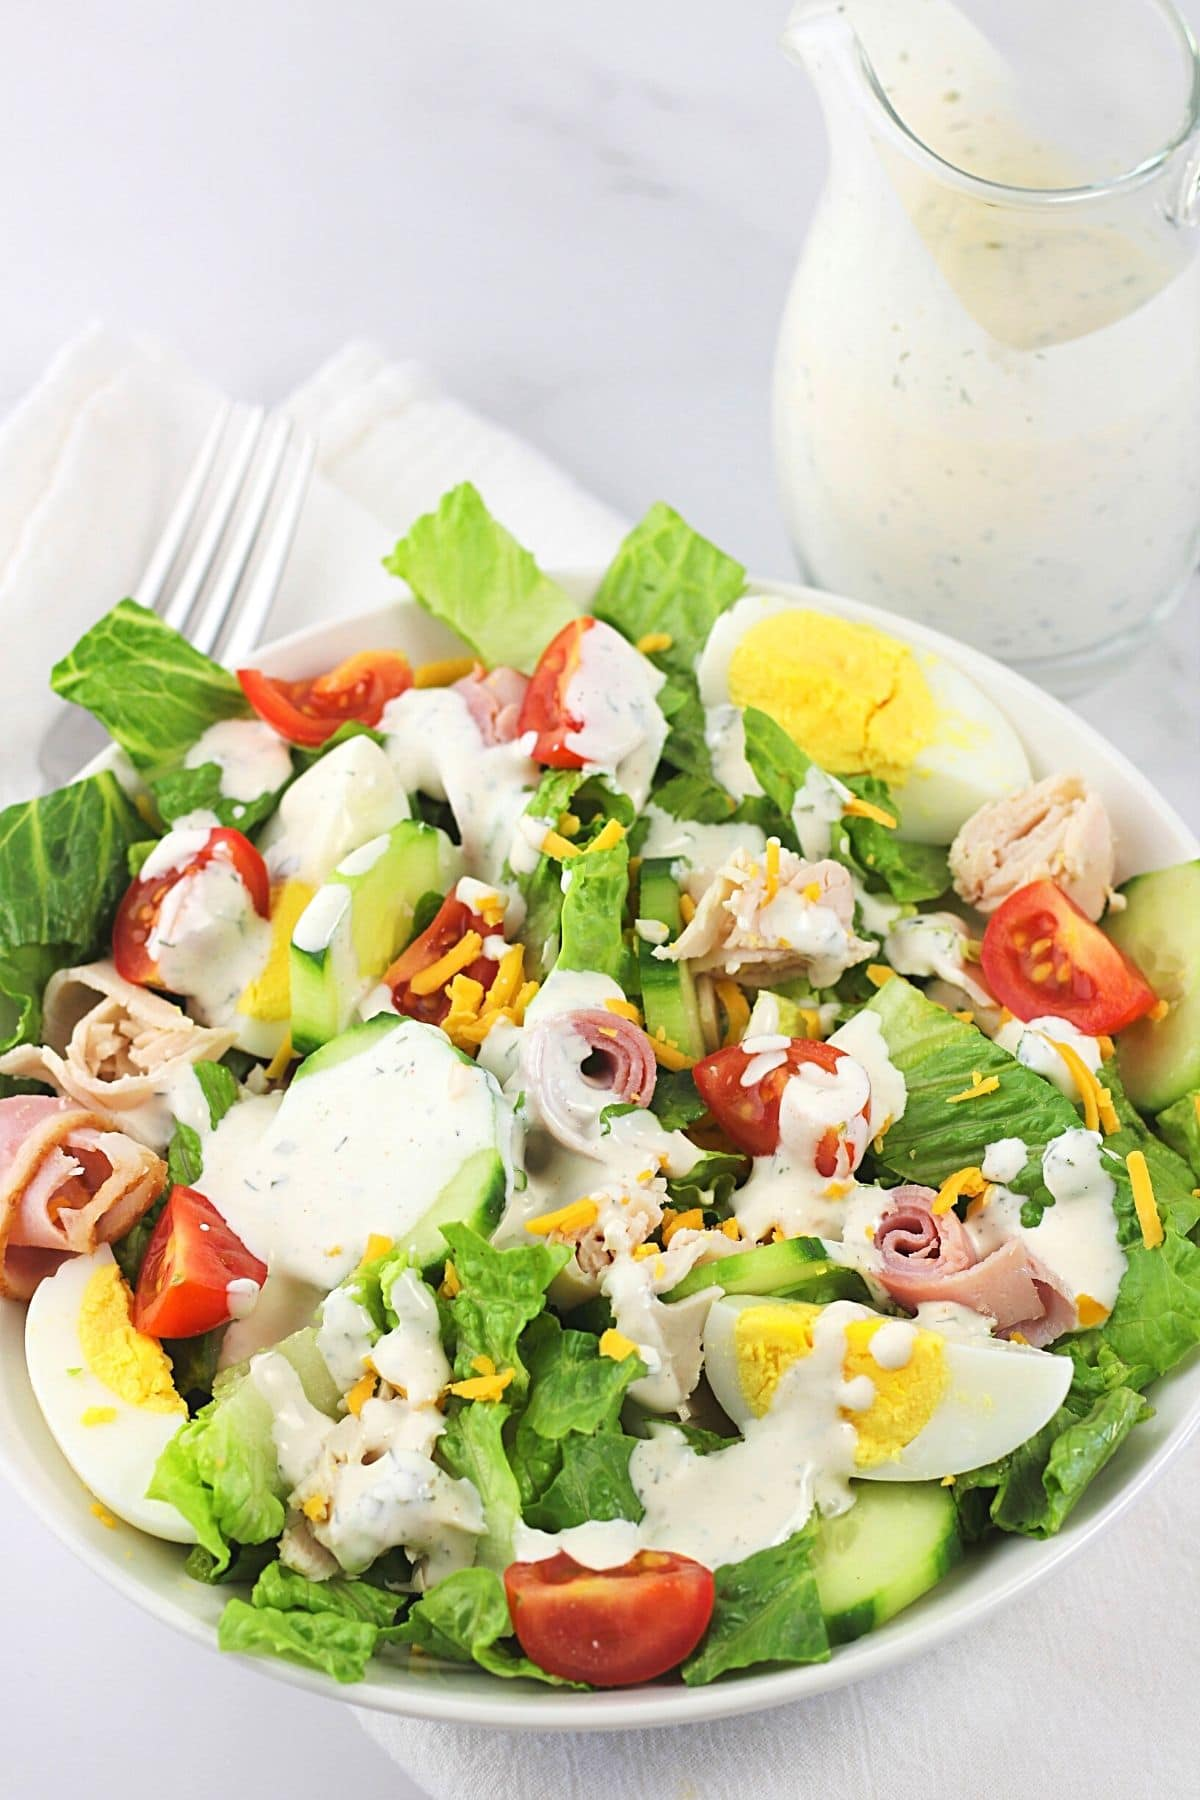 salad drizzled with easy homemade ranch dressing with a small pitcher of the dressing and a fork on the side